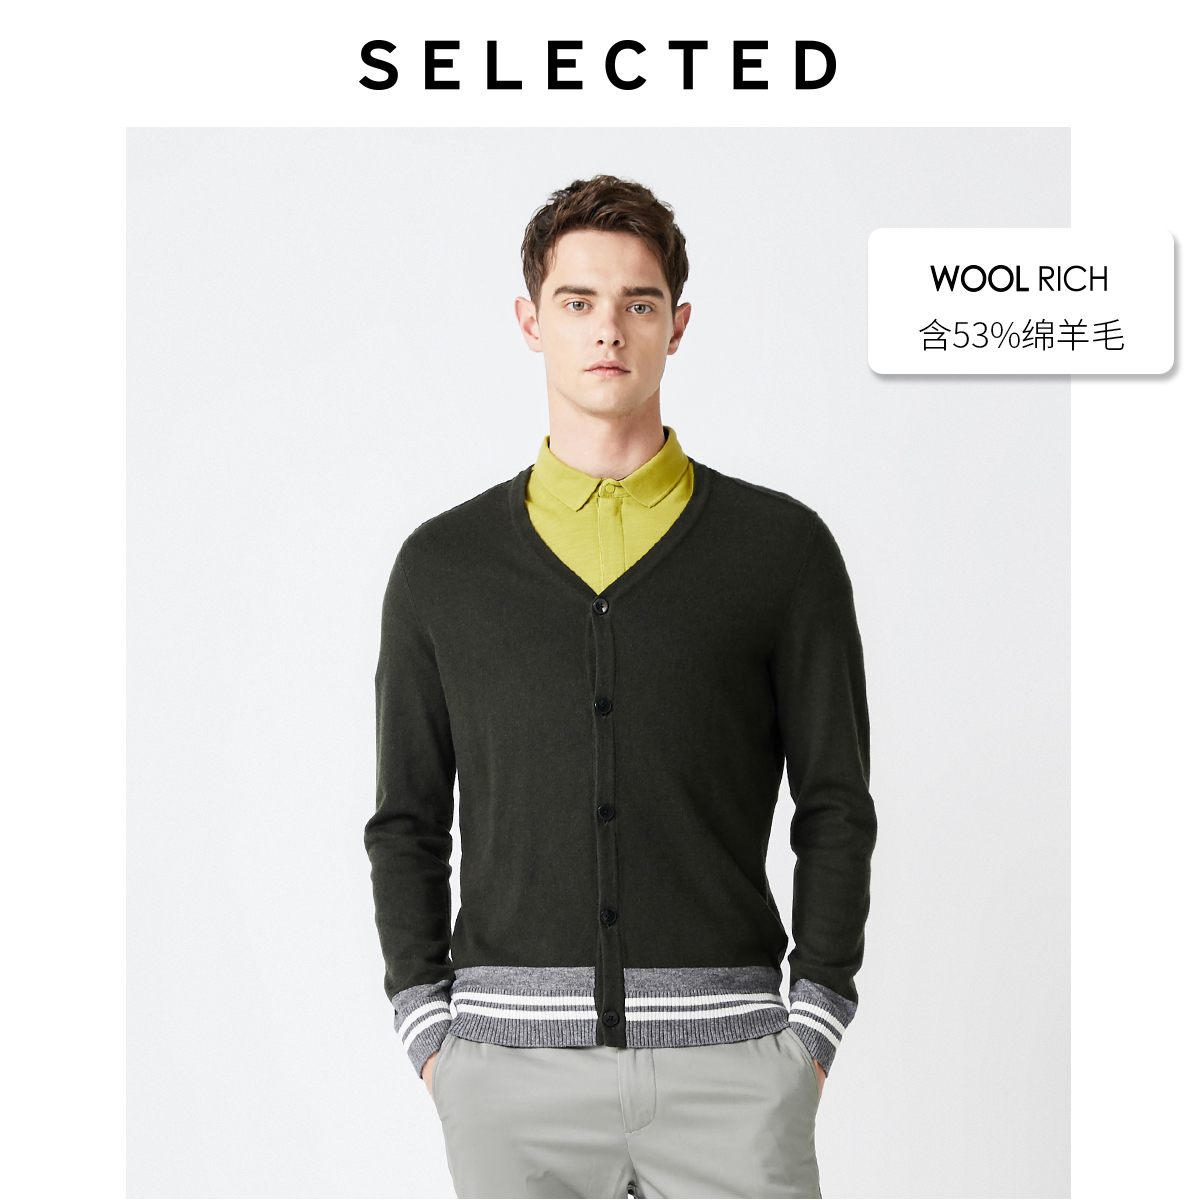 SELECTED Men's Autumn Woolen Striped Assorted Colors Knit Cardigan S|419324520